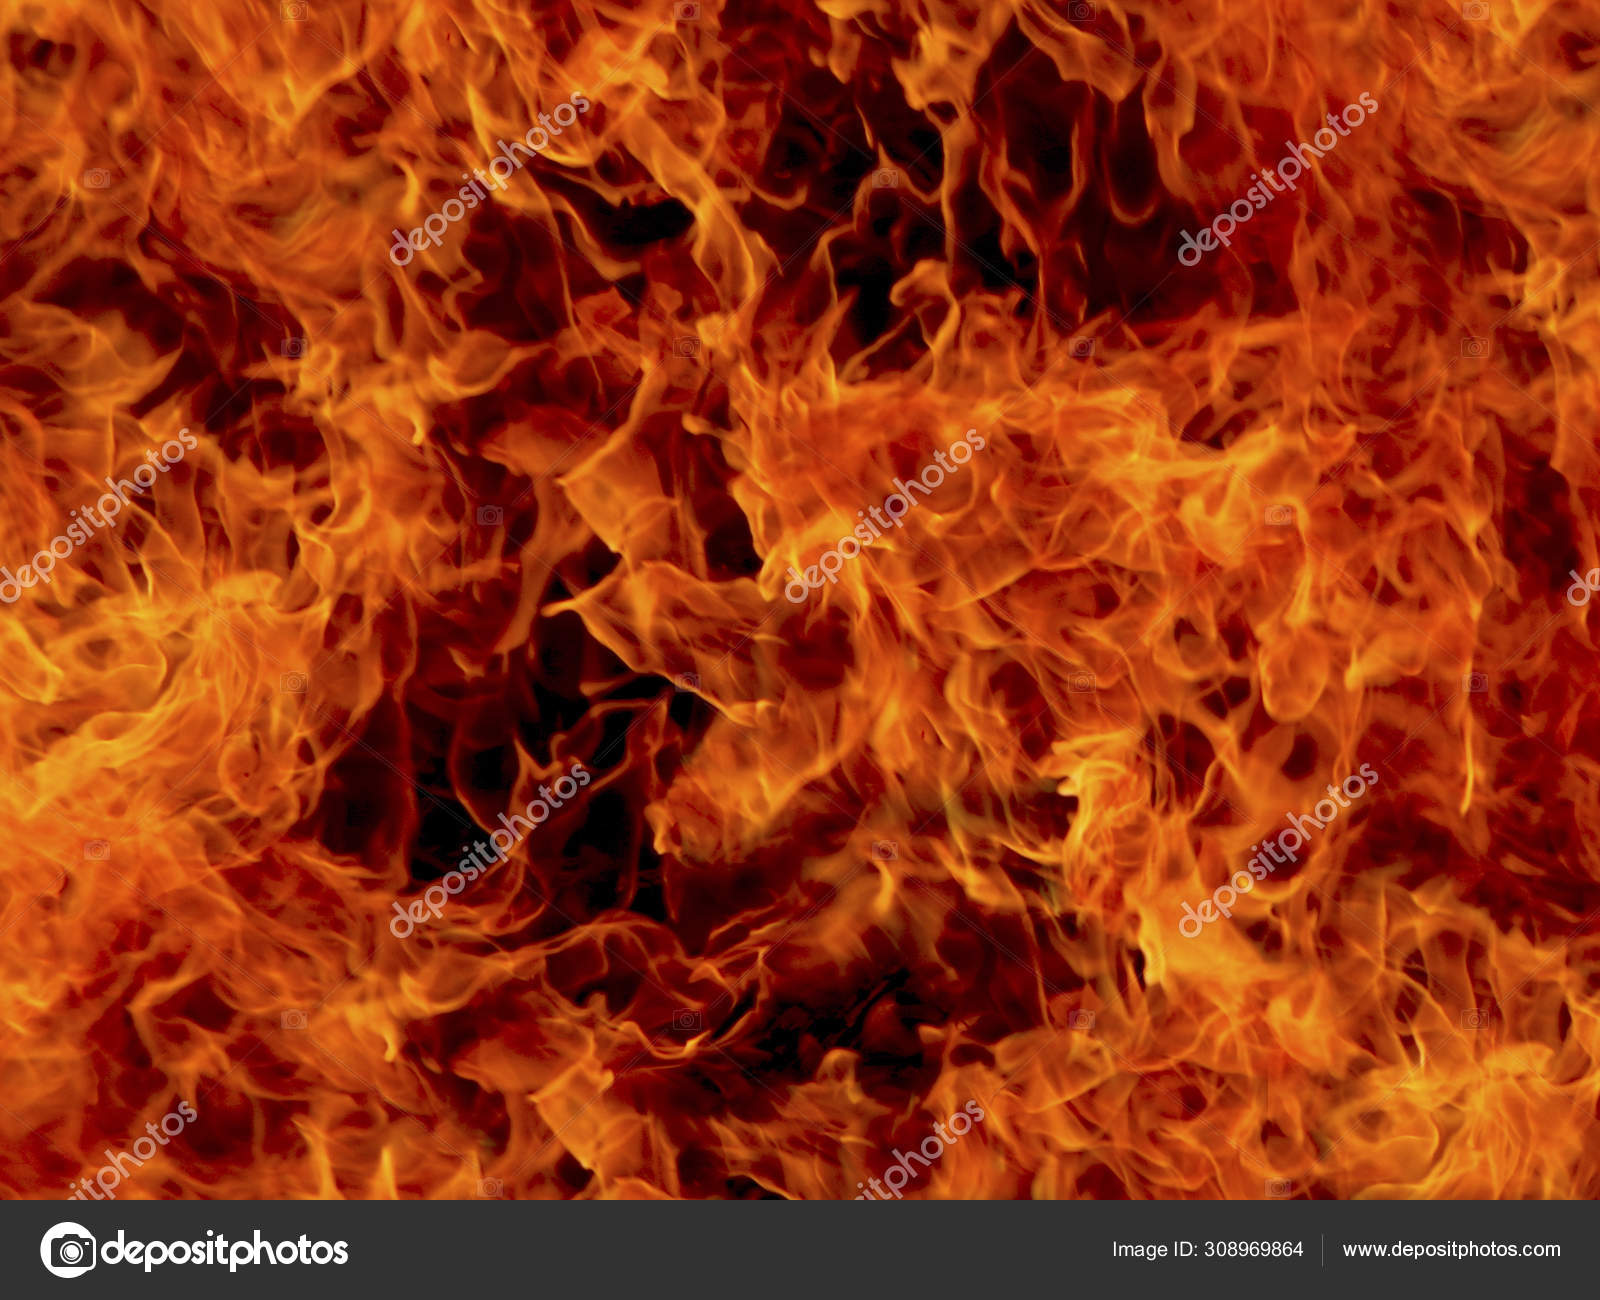 Fire Flames Background Of Flames Stock Photo C Trewq7239 308969864